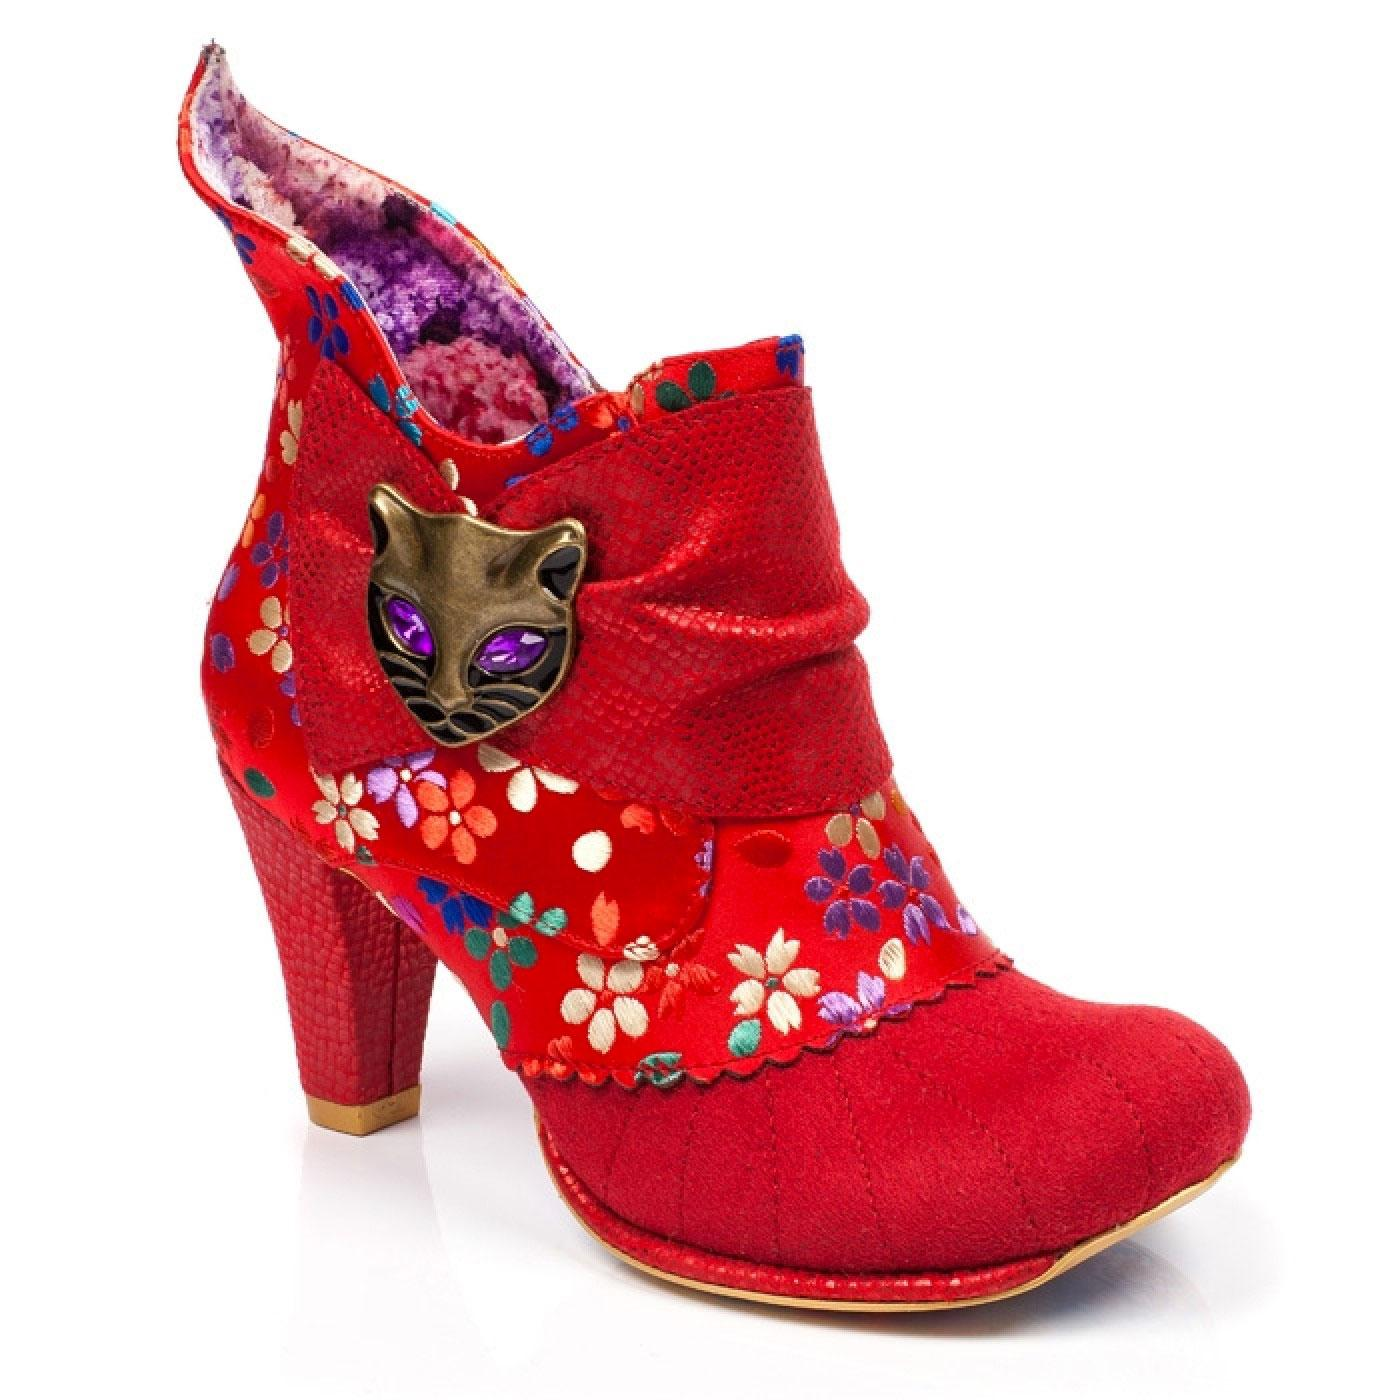 Miaow IRREGULAR CHOICE Retro 60s Floral Boots Red